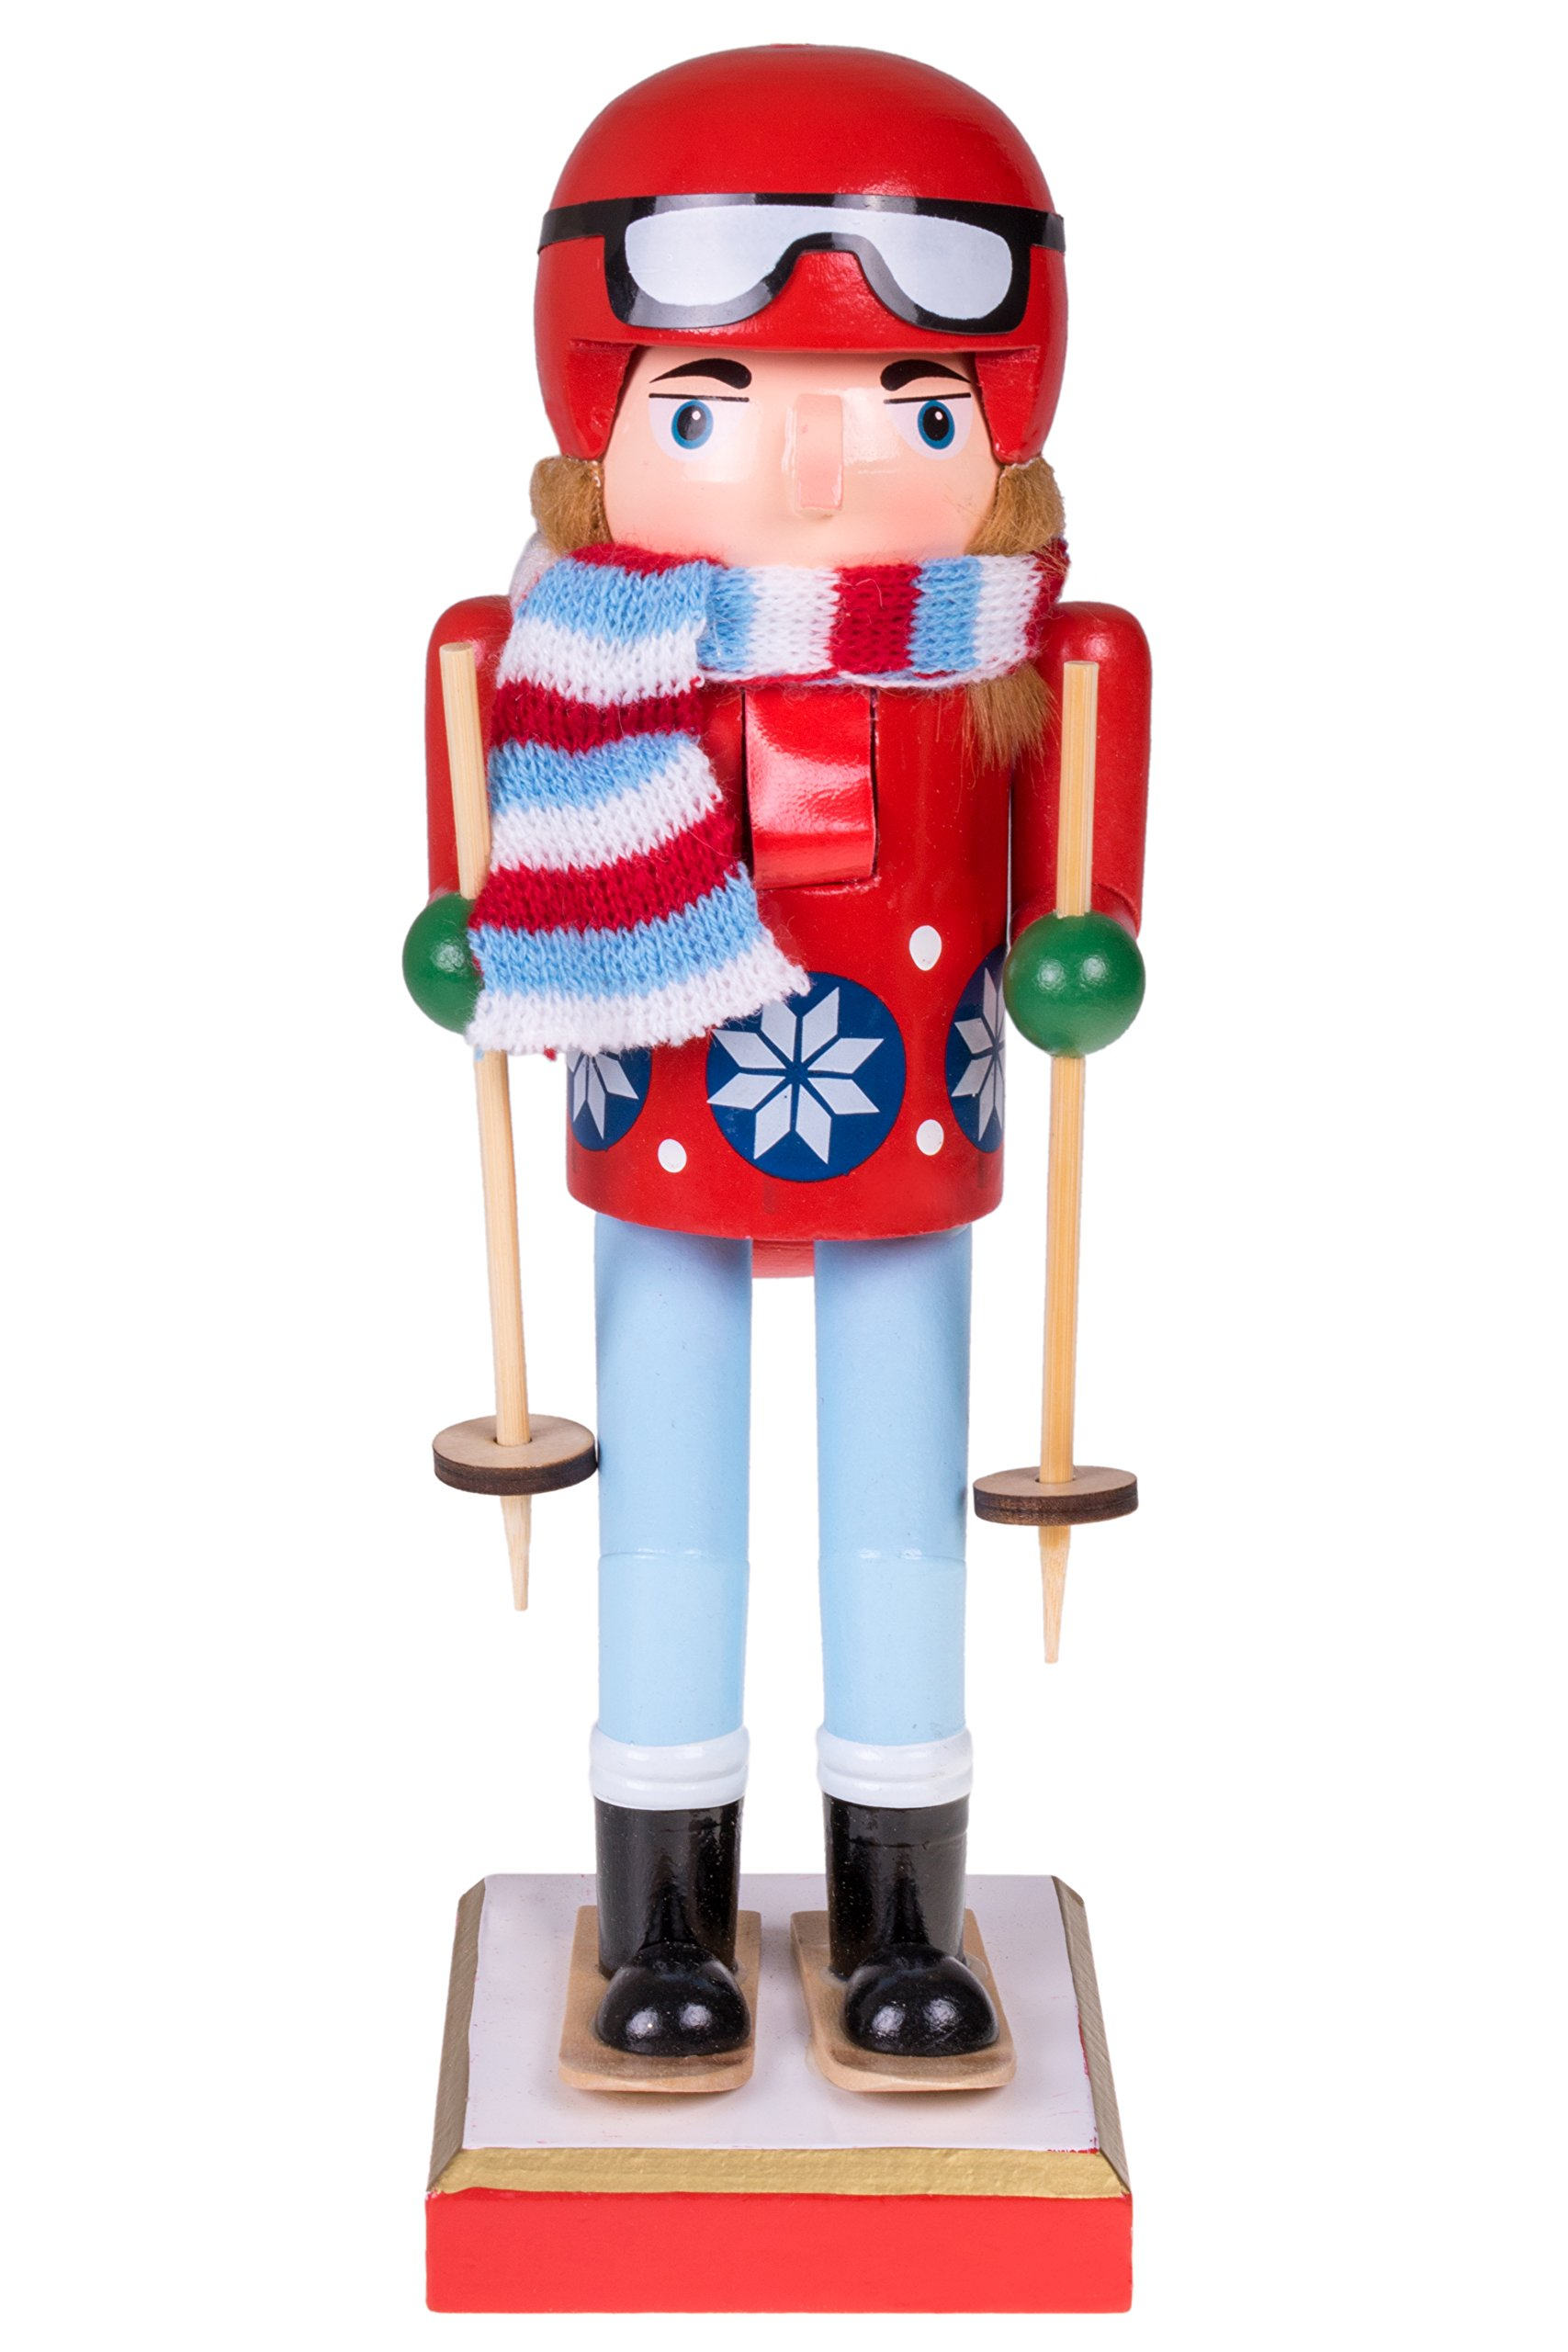 Clever Creations Skier Nutcracker | Traditional and Perfect Christmas Decor | 10'' Tall Nutcracker Wears Red Helmet with Coat | 100% Wood Christmas Nutcracker Attached with Scarf and Ski Equipment